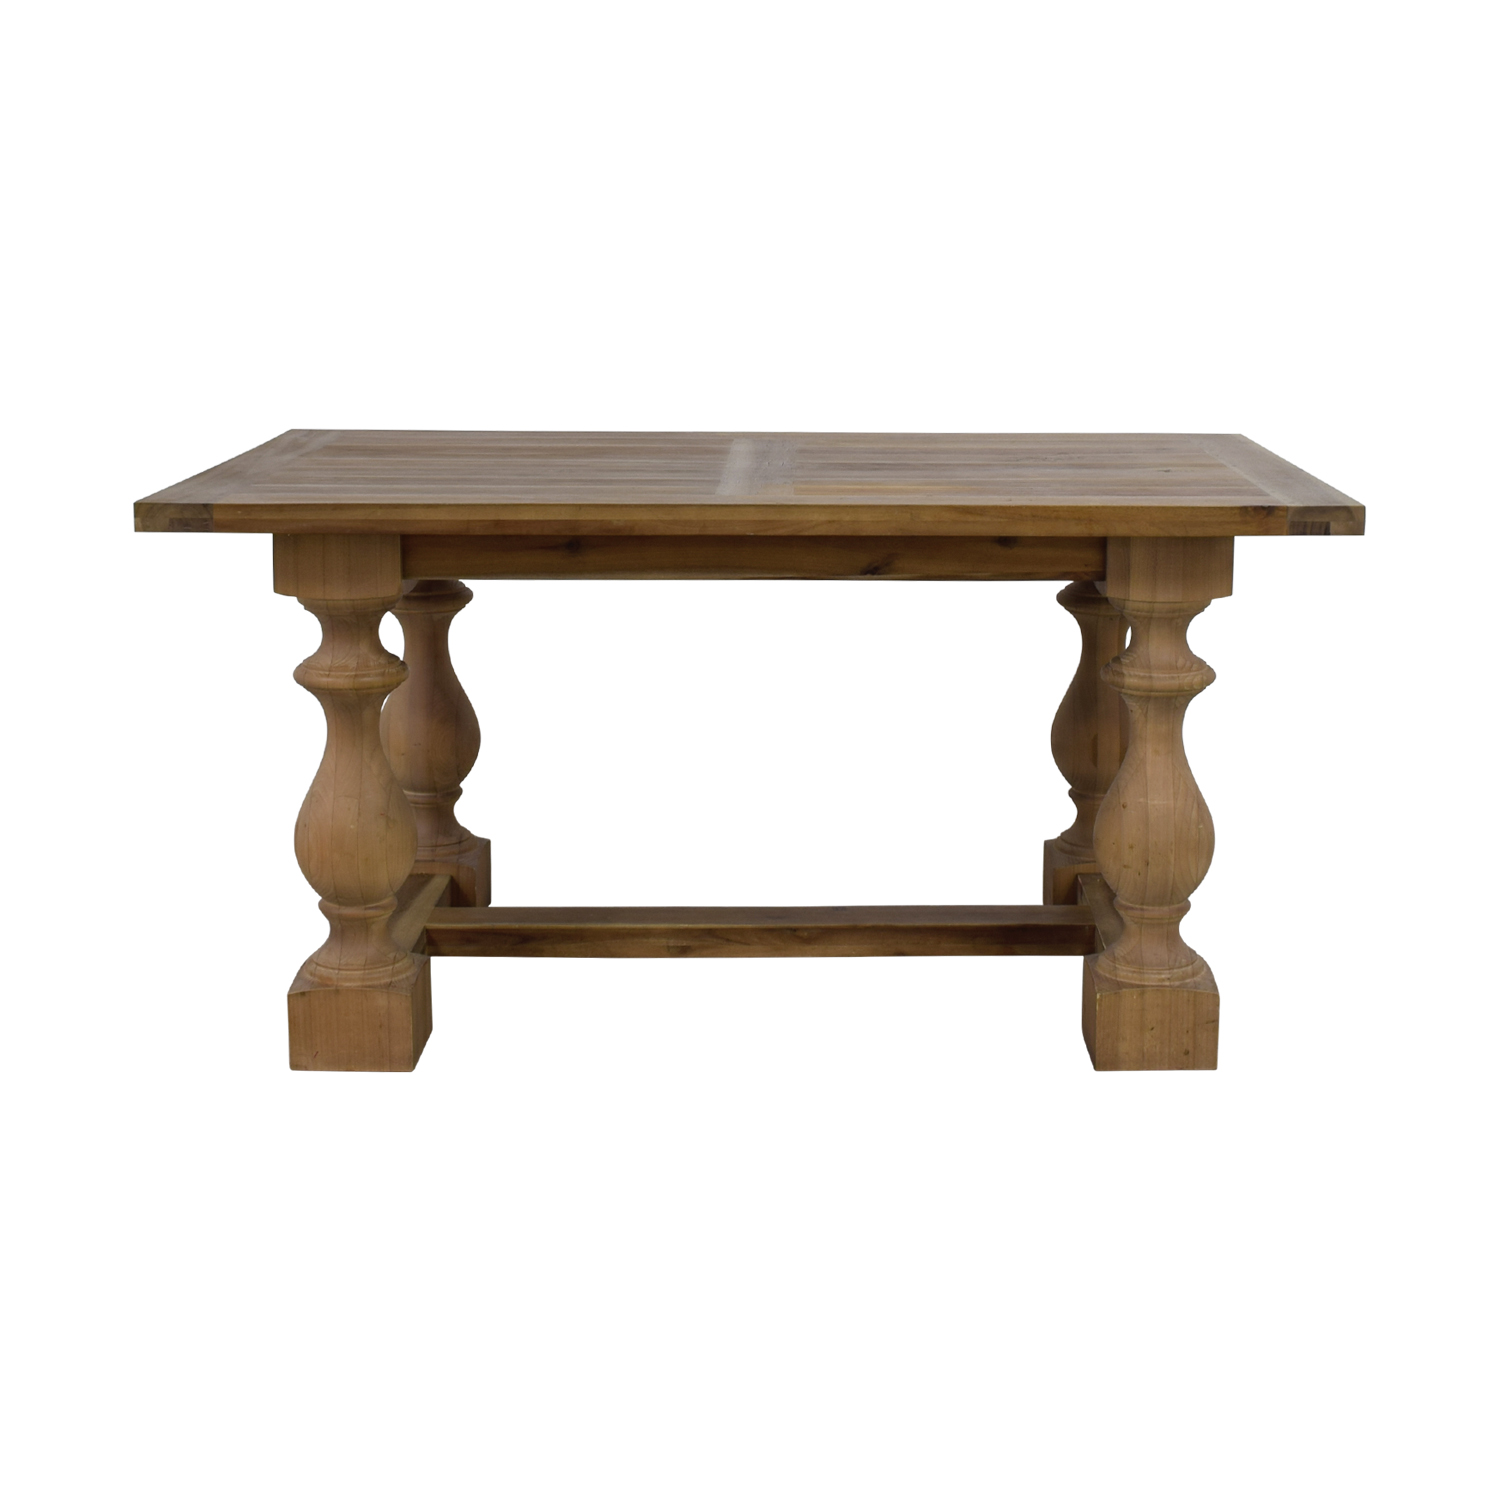 Restoration Hardware Restoration Hardware 17th Century Monastery Gray Acacia Dining Table second hand